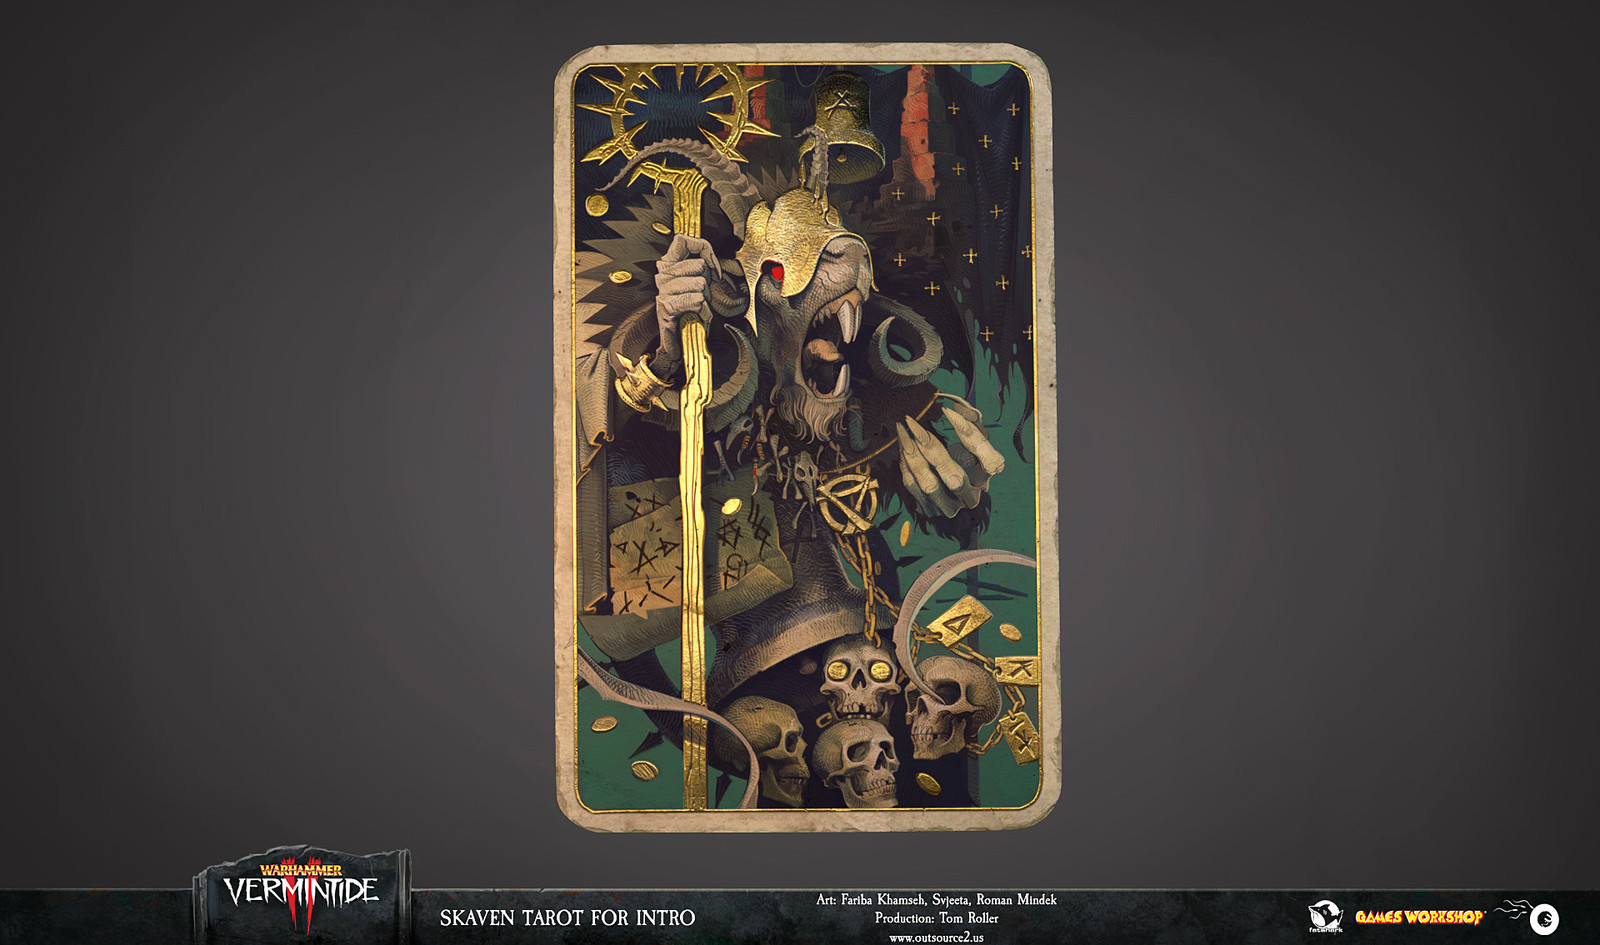 The Tarots of Warhammer Vermintide II CG intro combine illustration, metallic material pass and a card base with proper wear and tear.